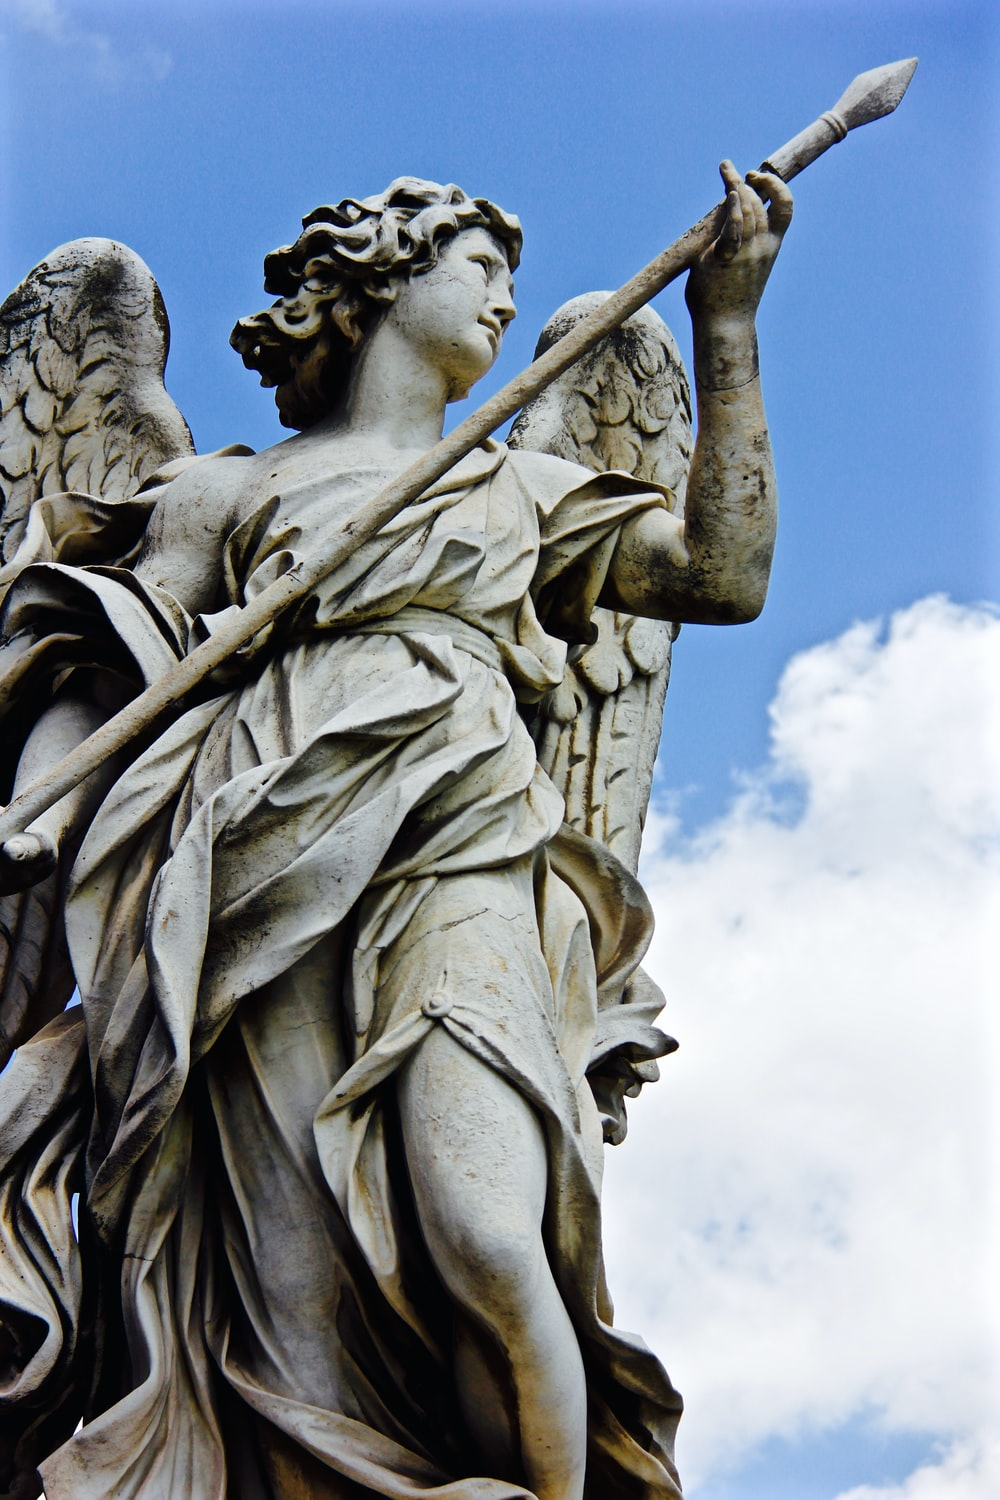 gray statue of an angel